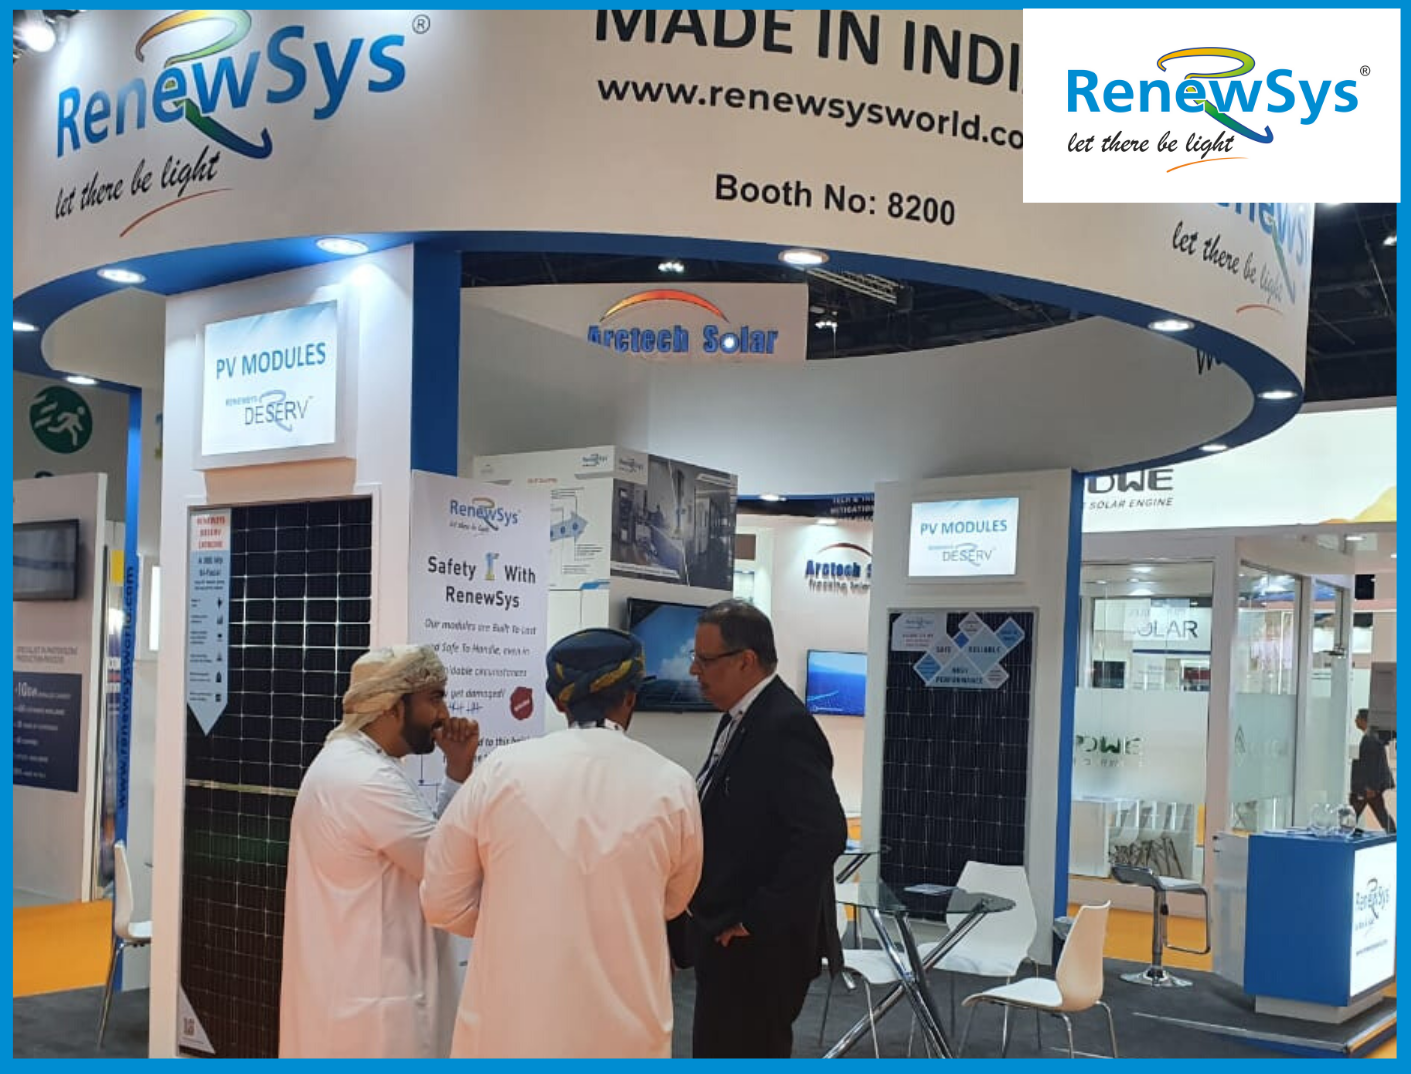 RenewSys booth at WFES 2020, Abu Dhabi